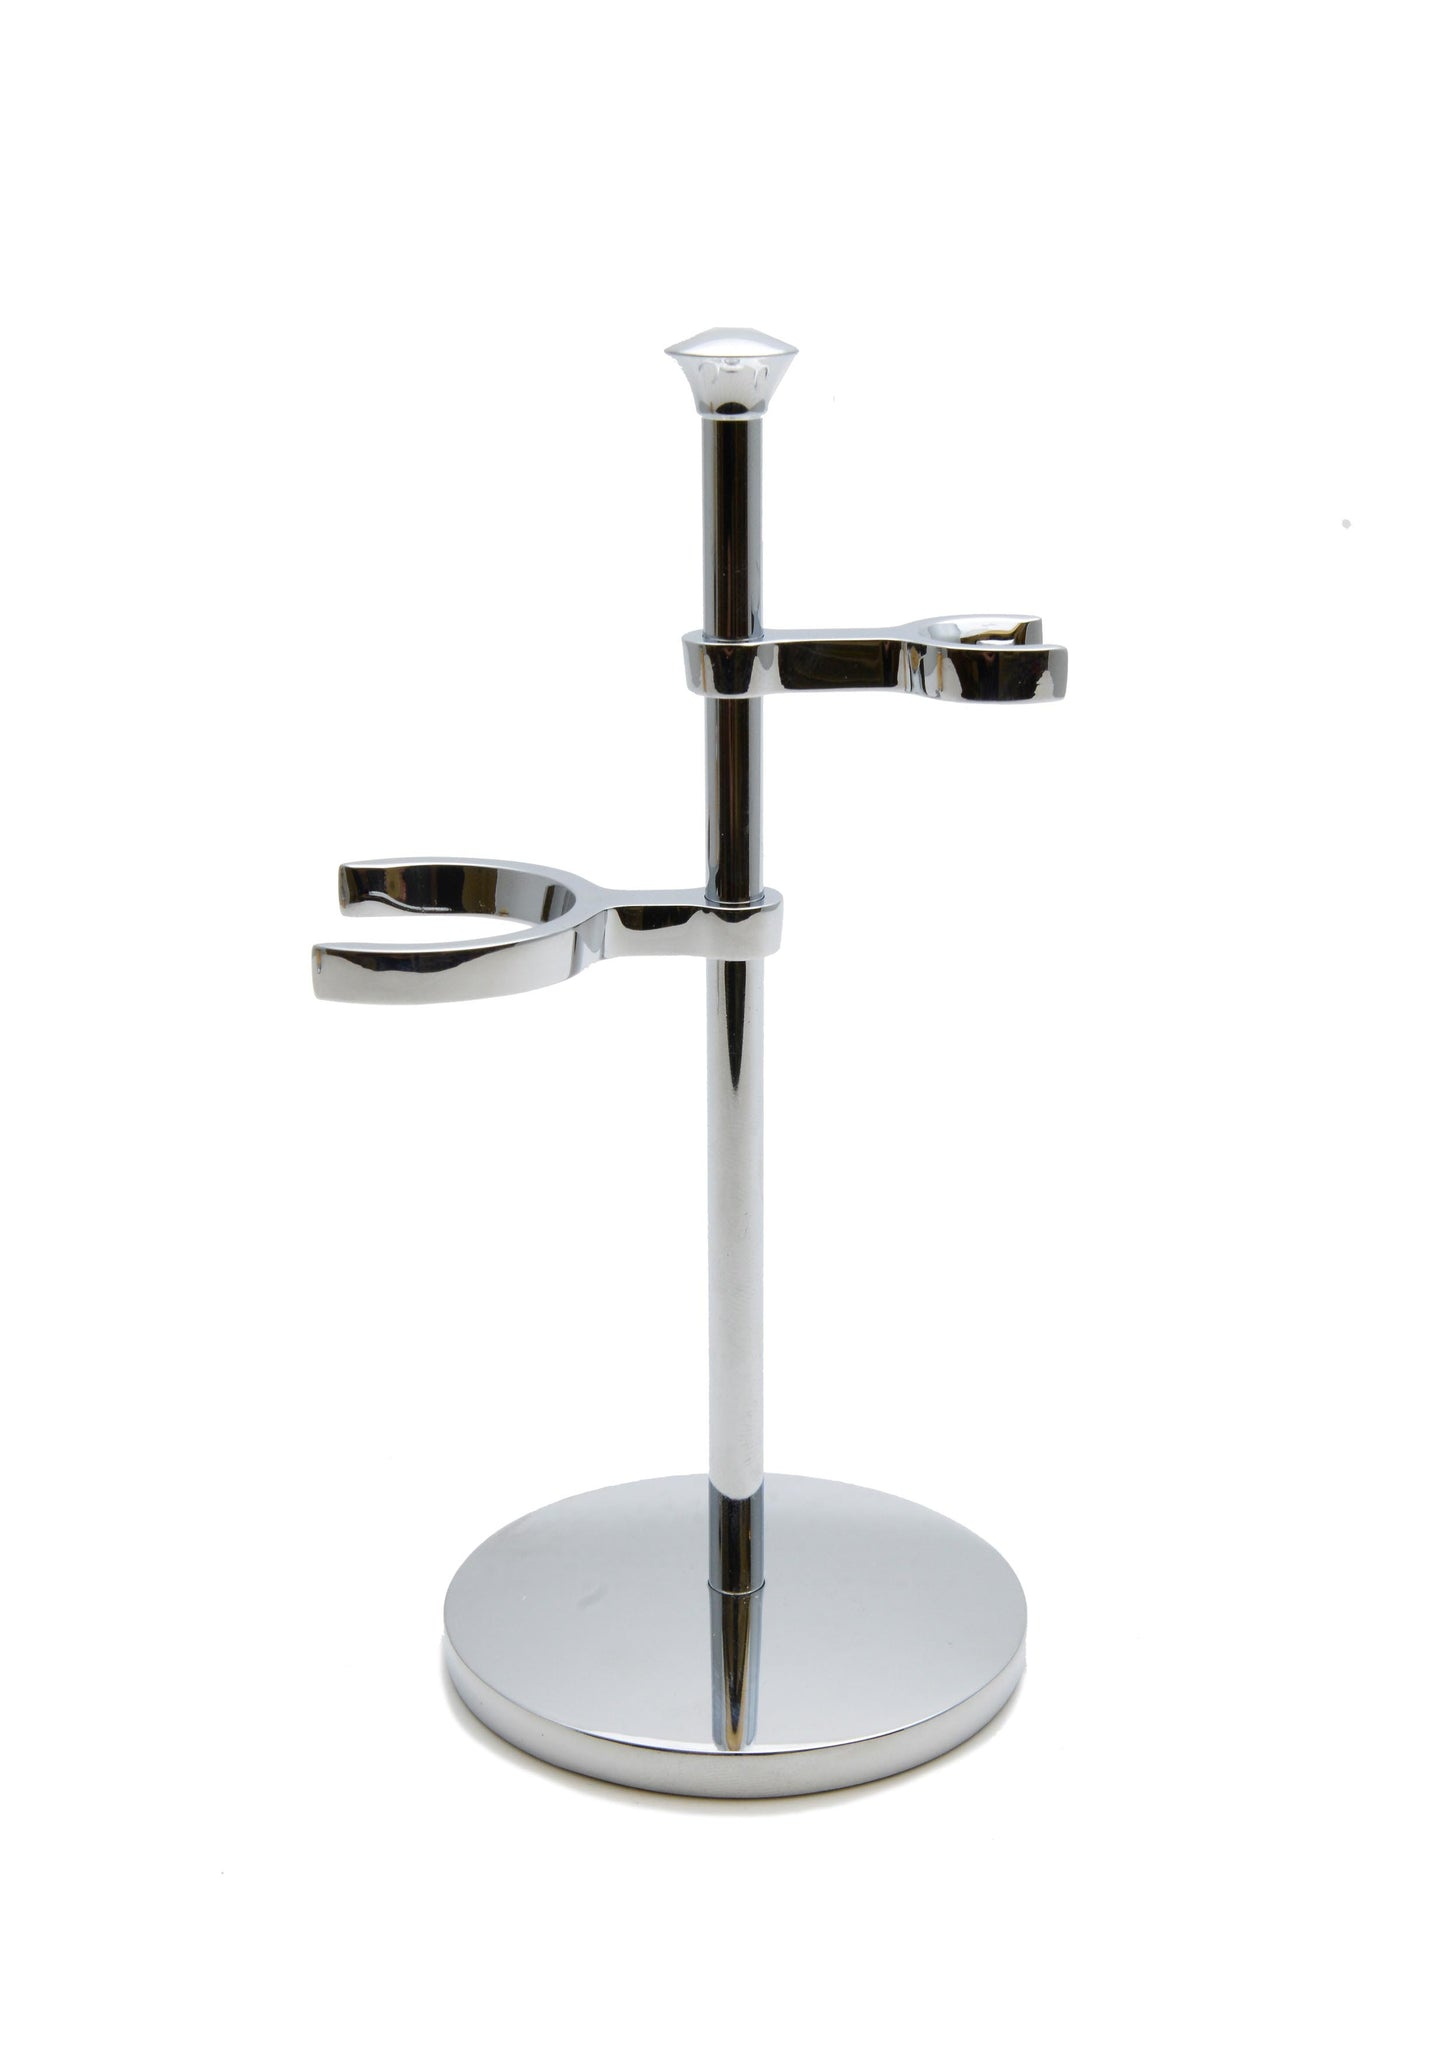 Muhle, CHROME SHAVING SET STAND FOR PURIST SERIES BRUSHES & RAZORS RHM50 Double Stand